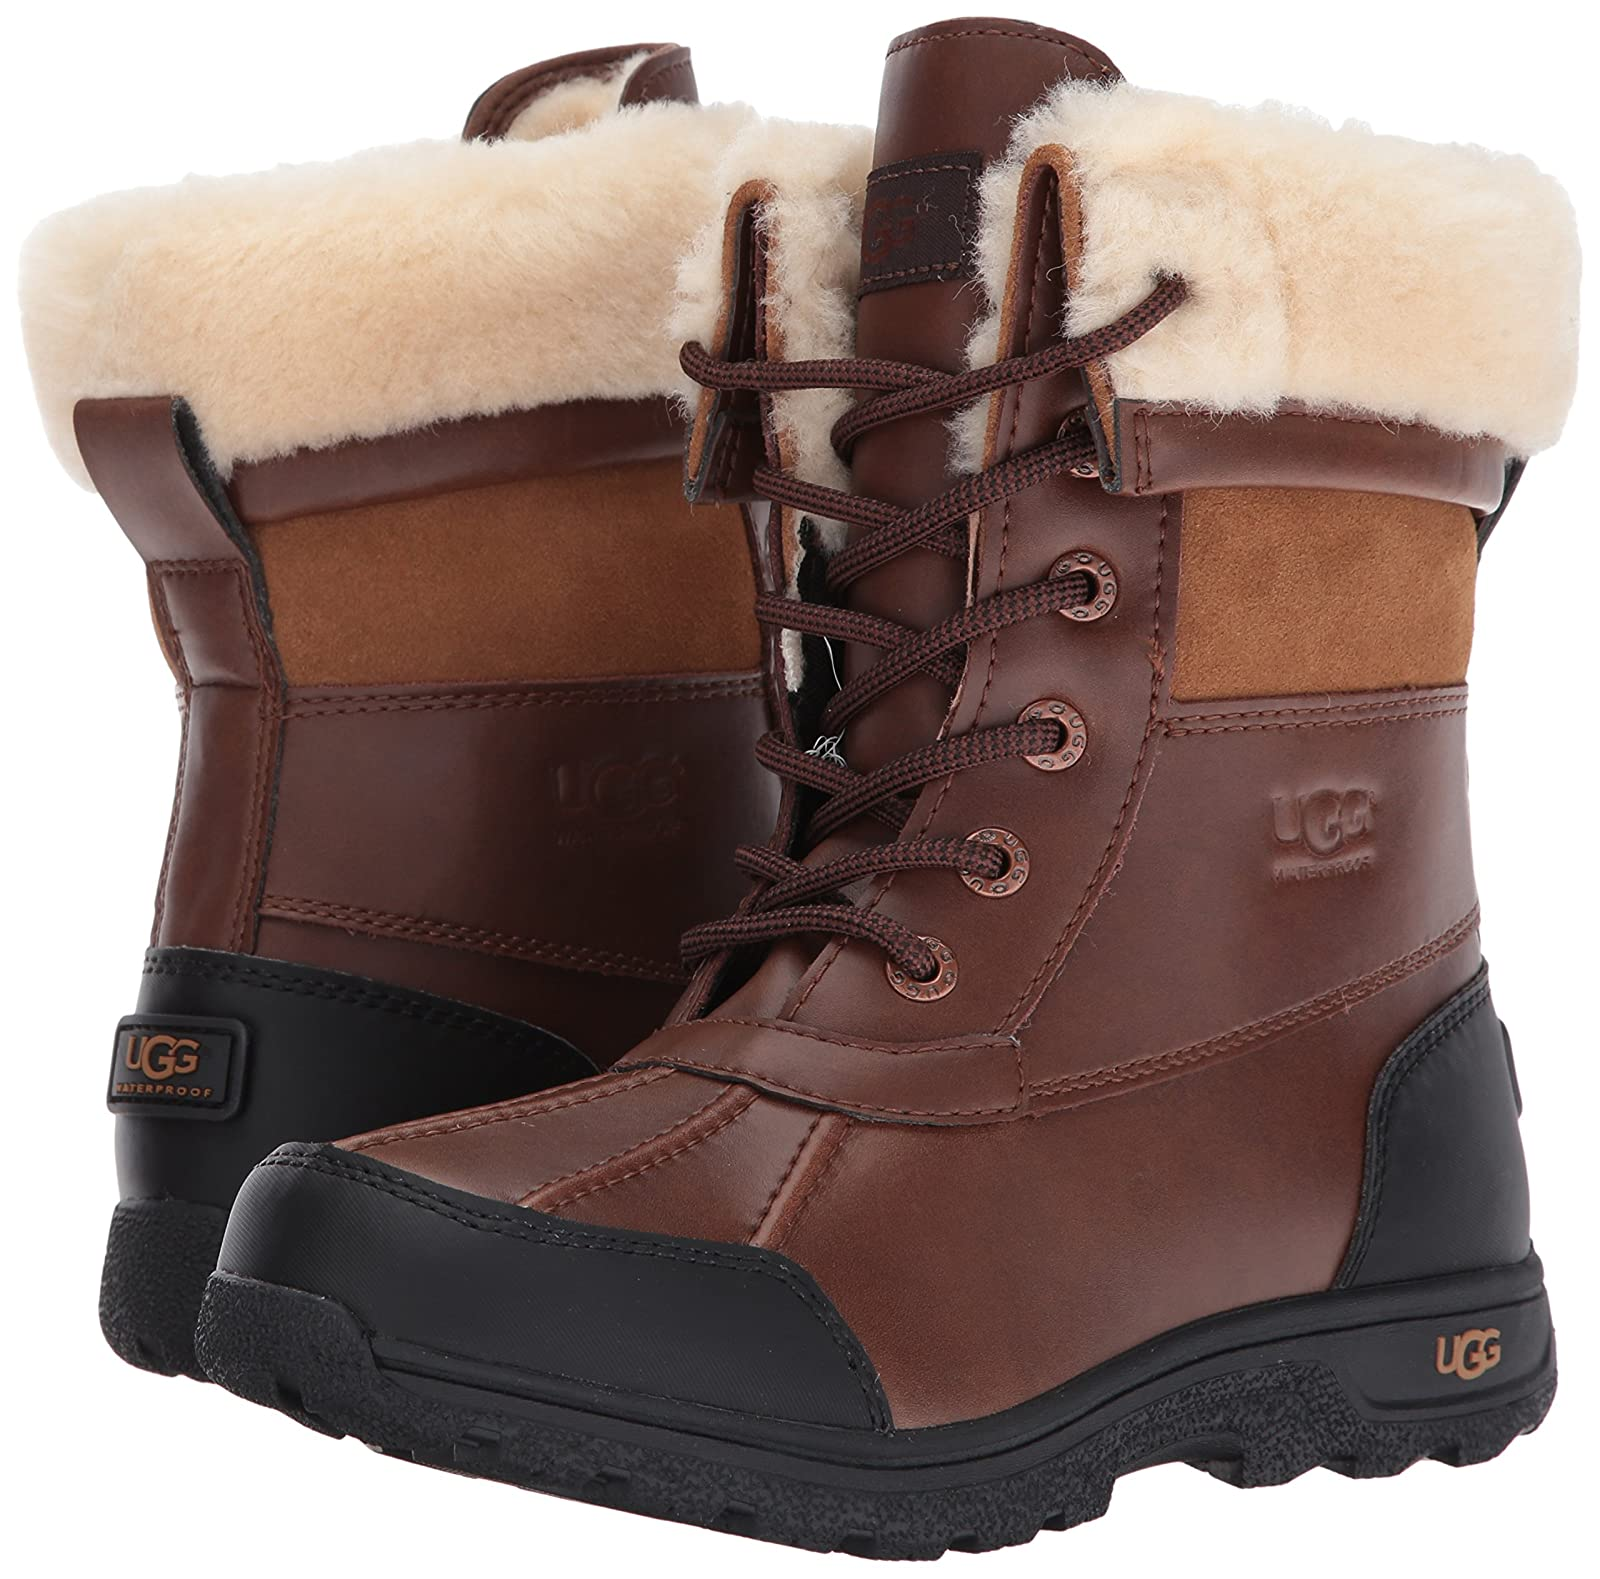 20dcb47d553 UGG Kids K Butte II Lace-up Boot K BUTTE II_K Worchester